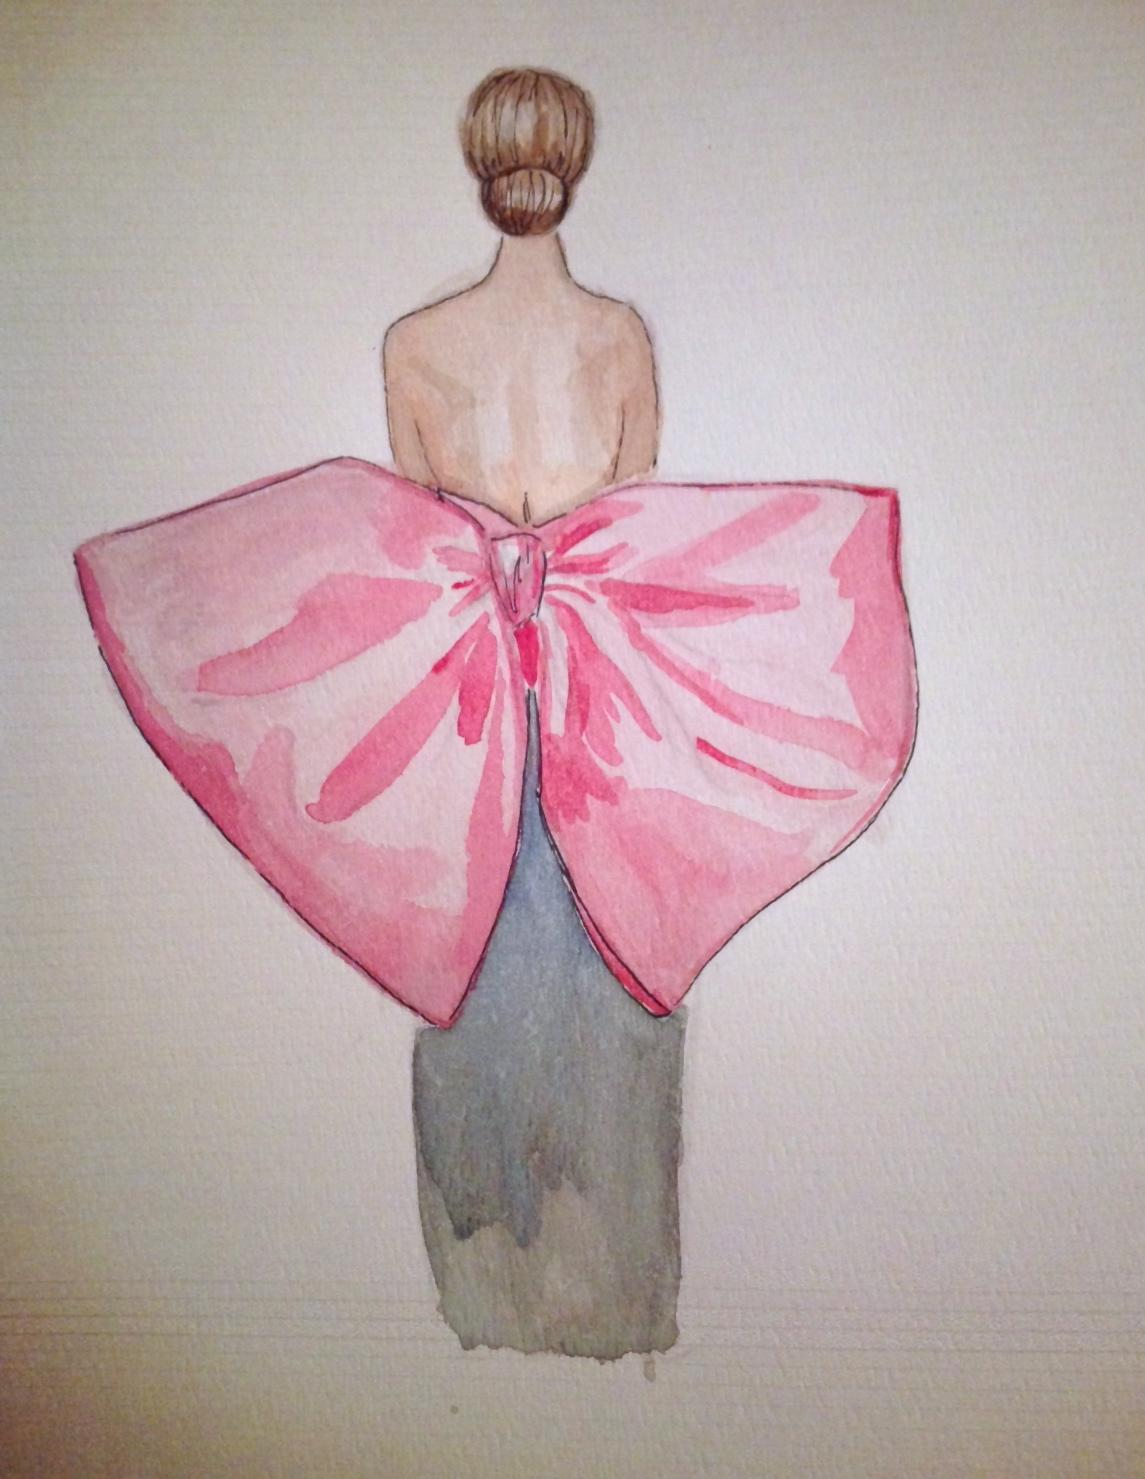 FINAL ~ EMBELLISHED ~ WATERCOLOR ~ SKETCHES ~ Feminine Ways - image 7 - student project